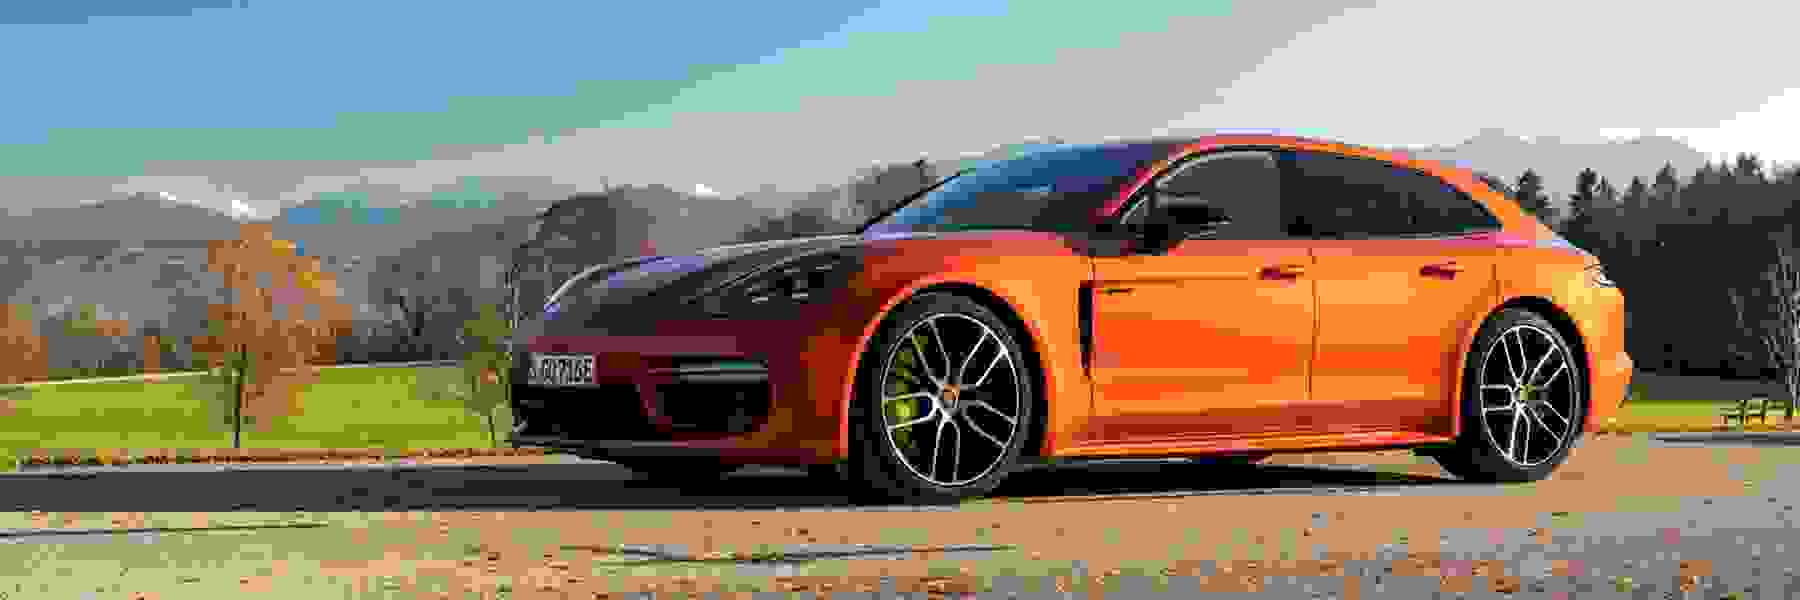 Spring Demonstration Drive Day - Porsche Exeter